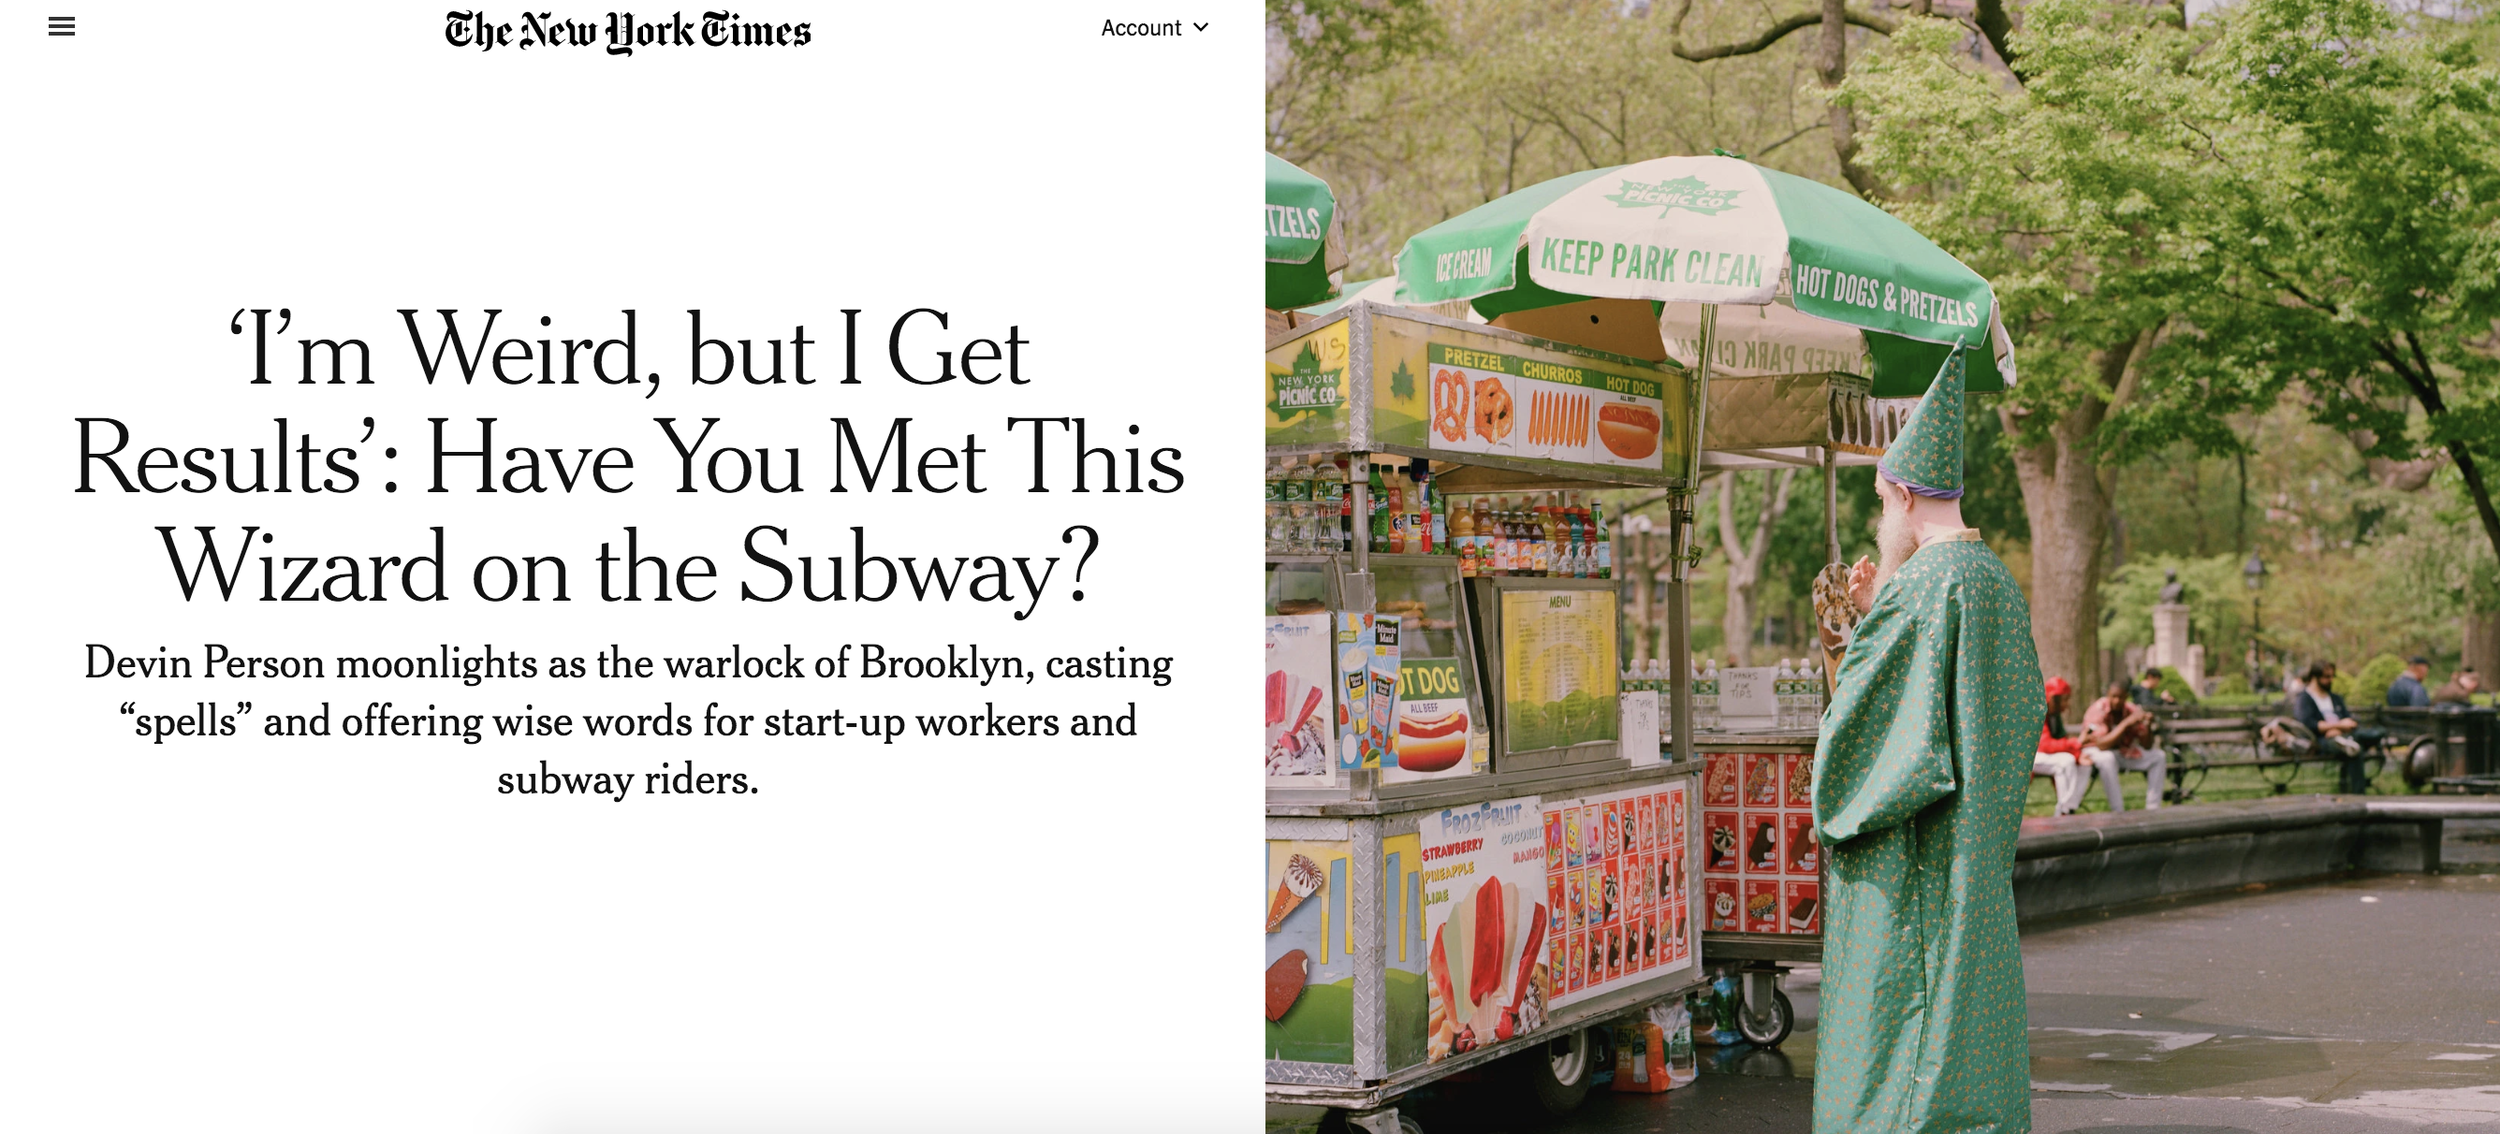 'I'm_Weird__but_I_Get_Results'__Have_You_Met_This_Wizard_on_the_Subway__-_The_New_York_Times.png